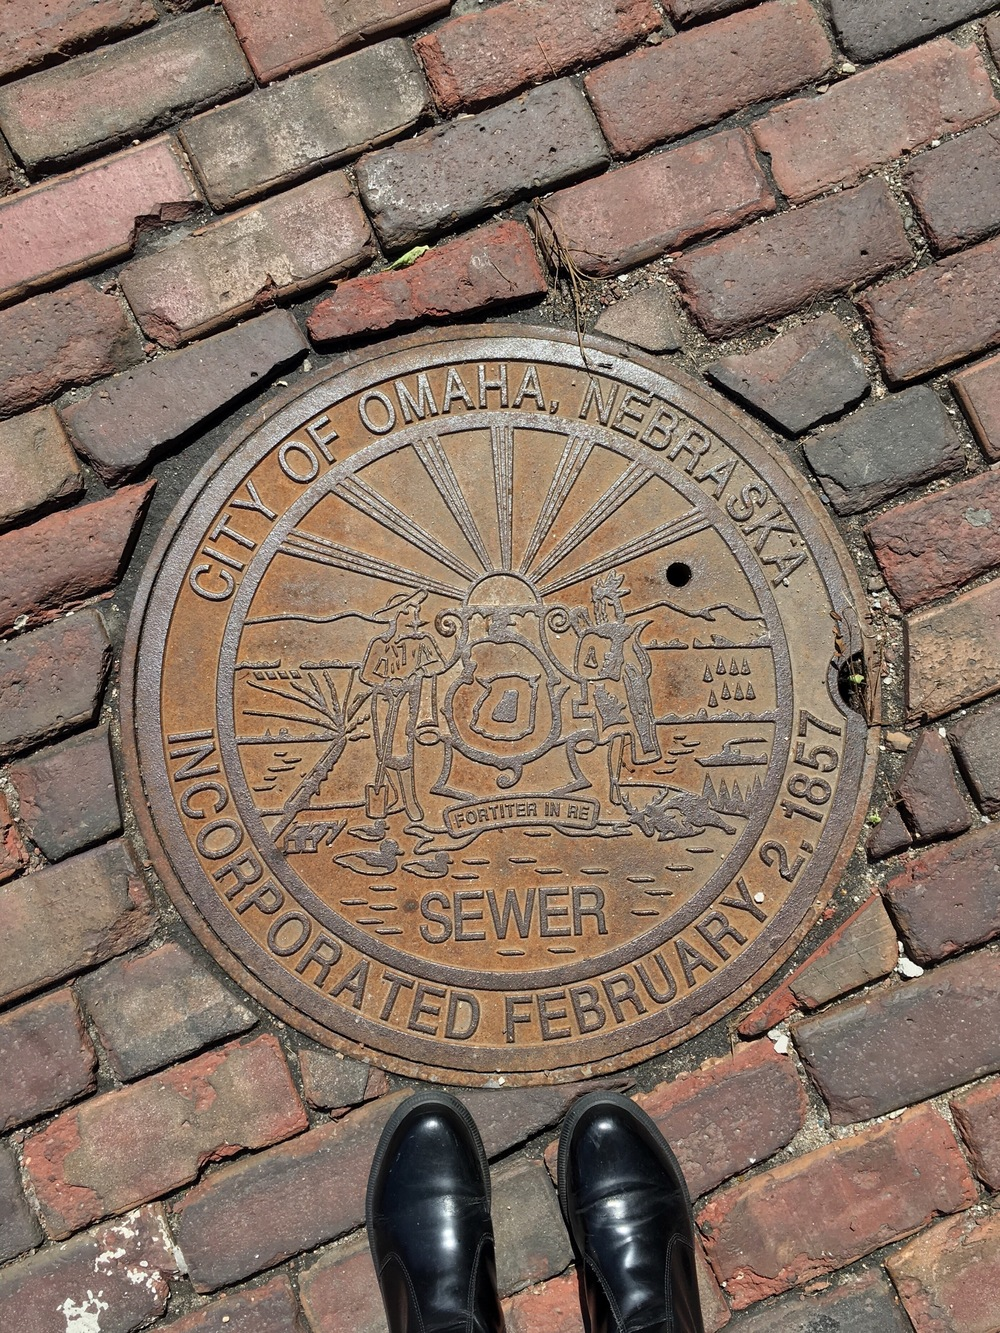 Lia took a photo of the sewer cover for me. One of my weird sources of pleasure is cities with cool manhole covers. Omaha's was pretty fun; Charleston, SC's is two cannons and a palm tree; and Lia knows one of the reasons I love her is because her hometown has the only triangular manhole covers in the country.